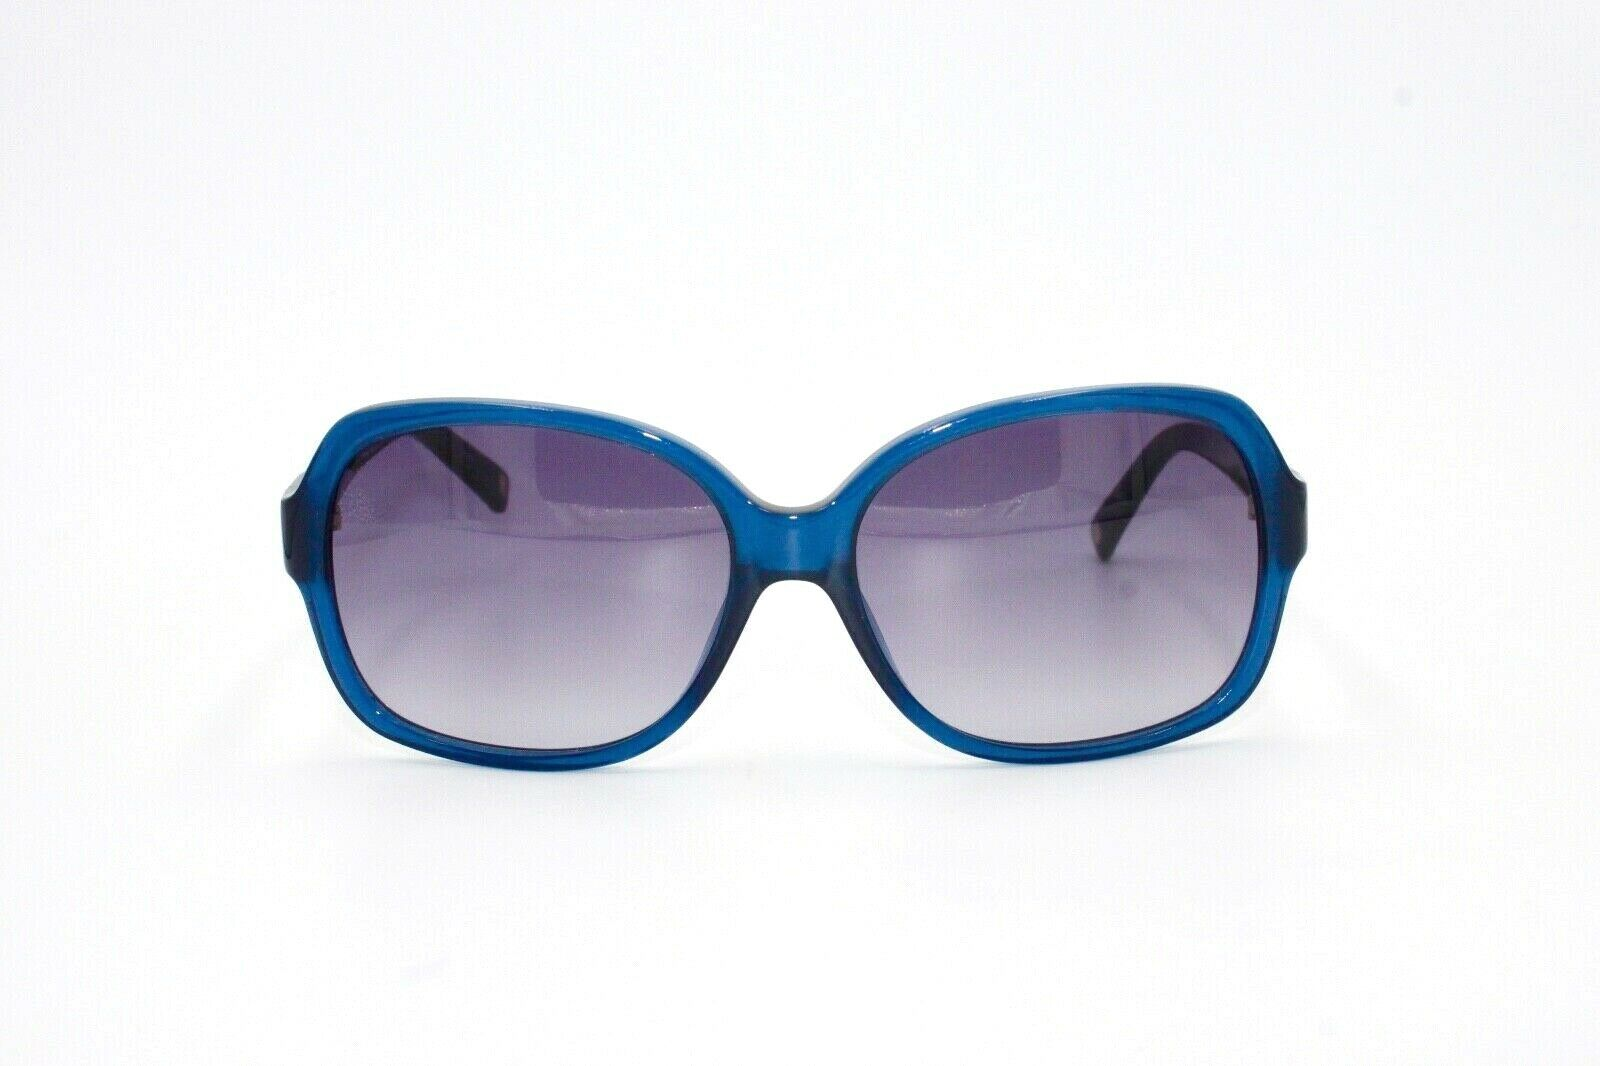 Nine West Sunglass NW587S 434 58 15 135 - Mydesigneroptic